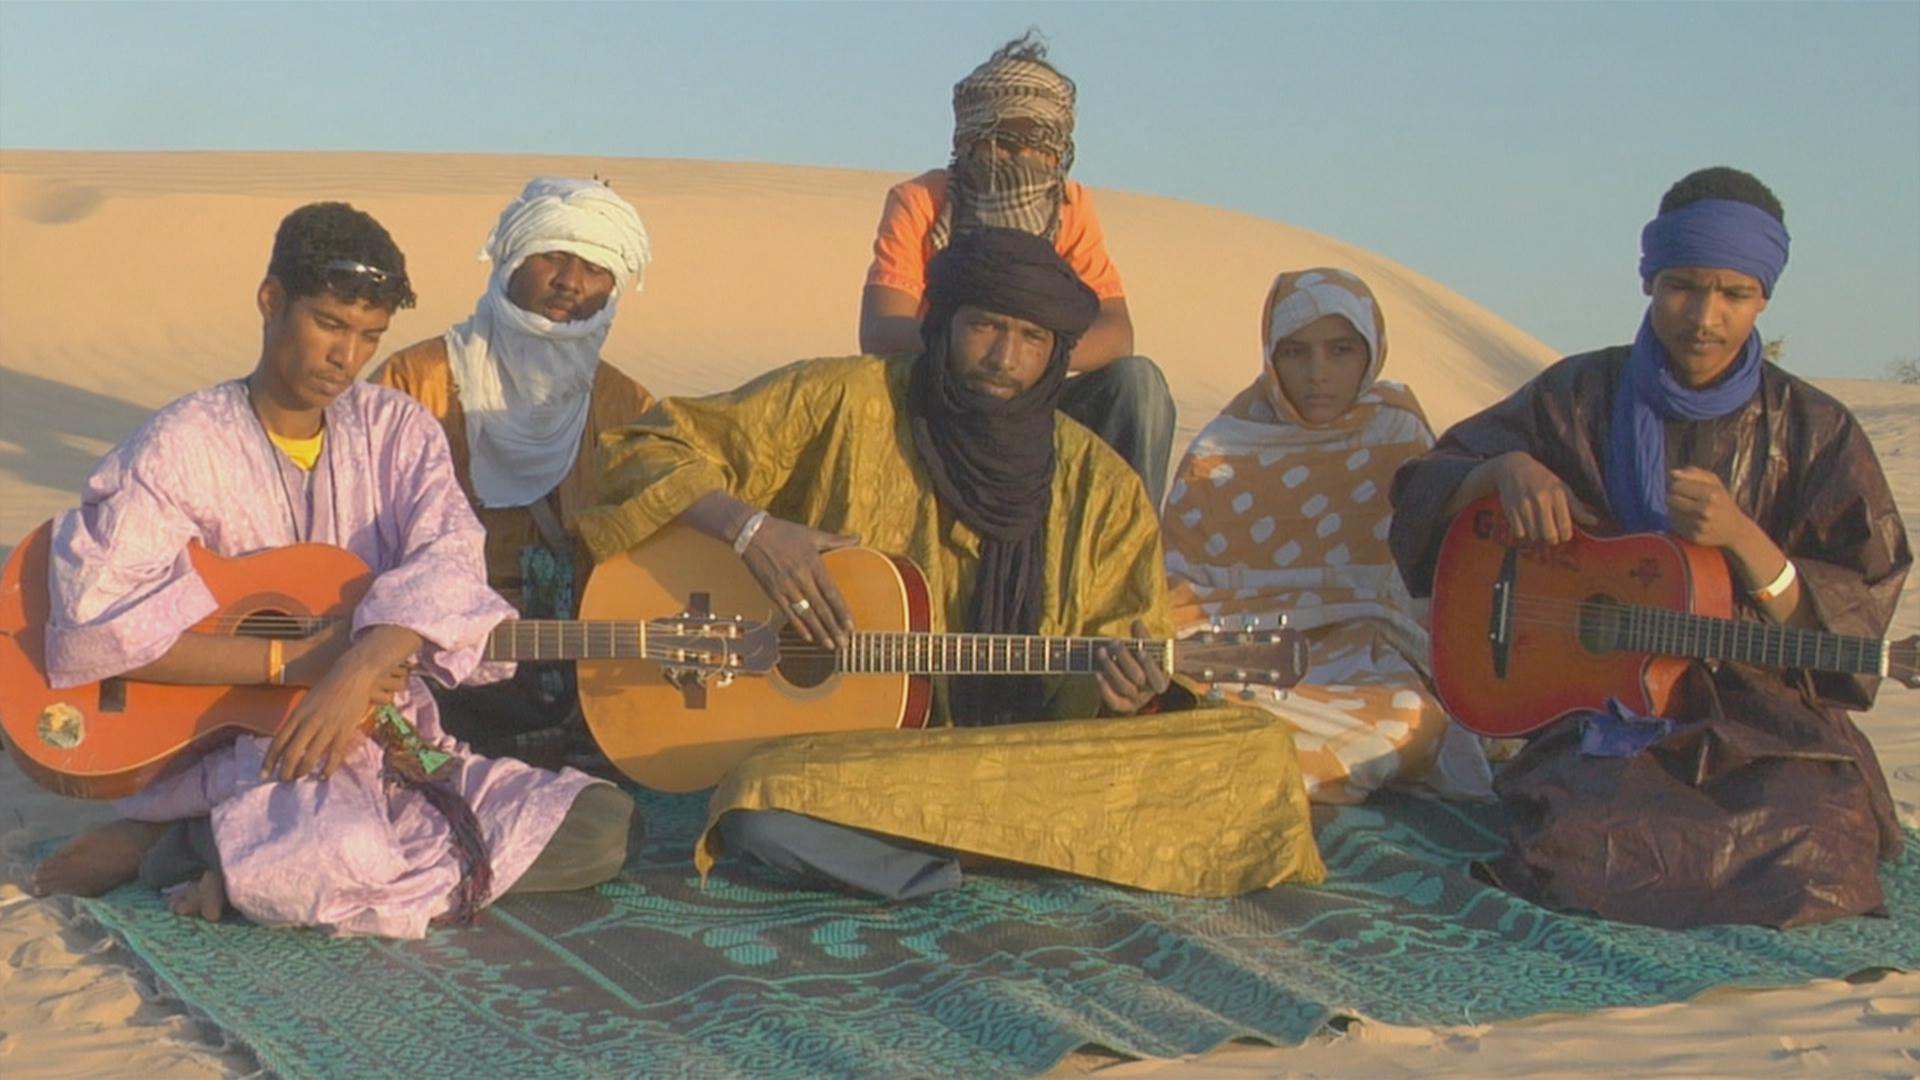 Ahmed's band, Amanar. He formed the band upon his return to Mali from Libya.